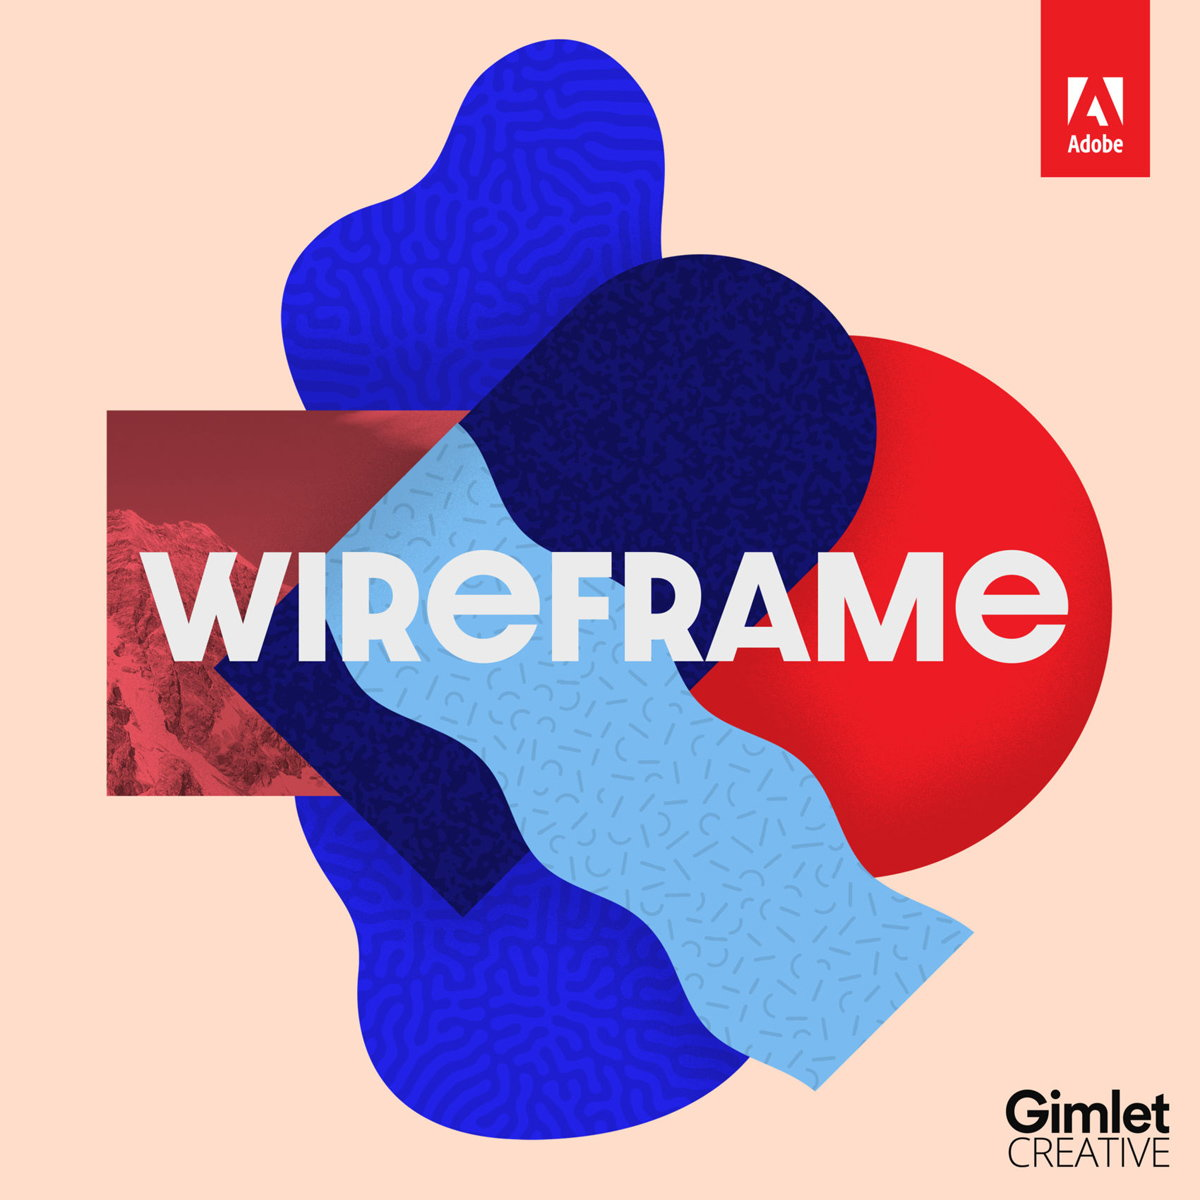 Adobe Launches 'Wireframe' Podcast in Partnership with Gimlet Creative